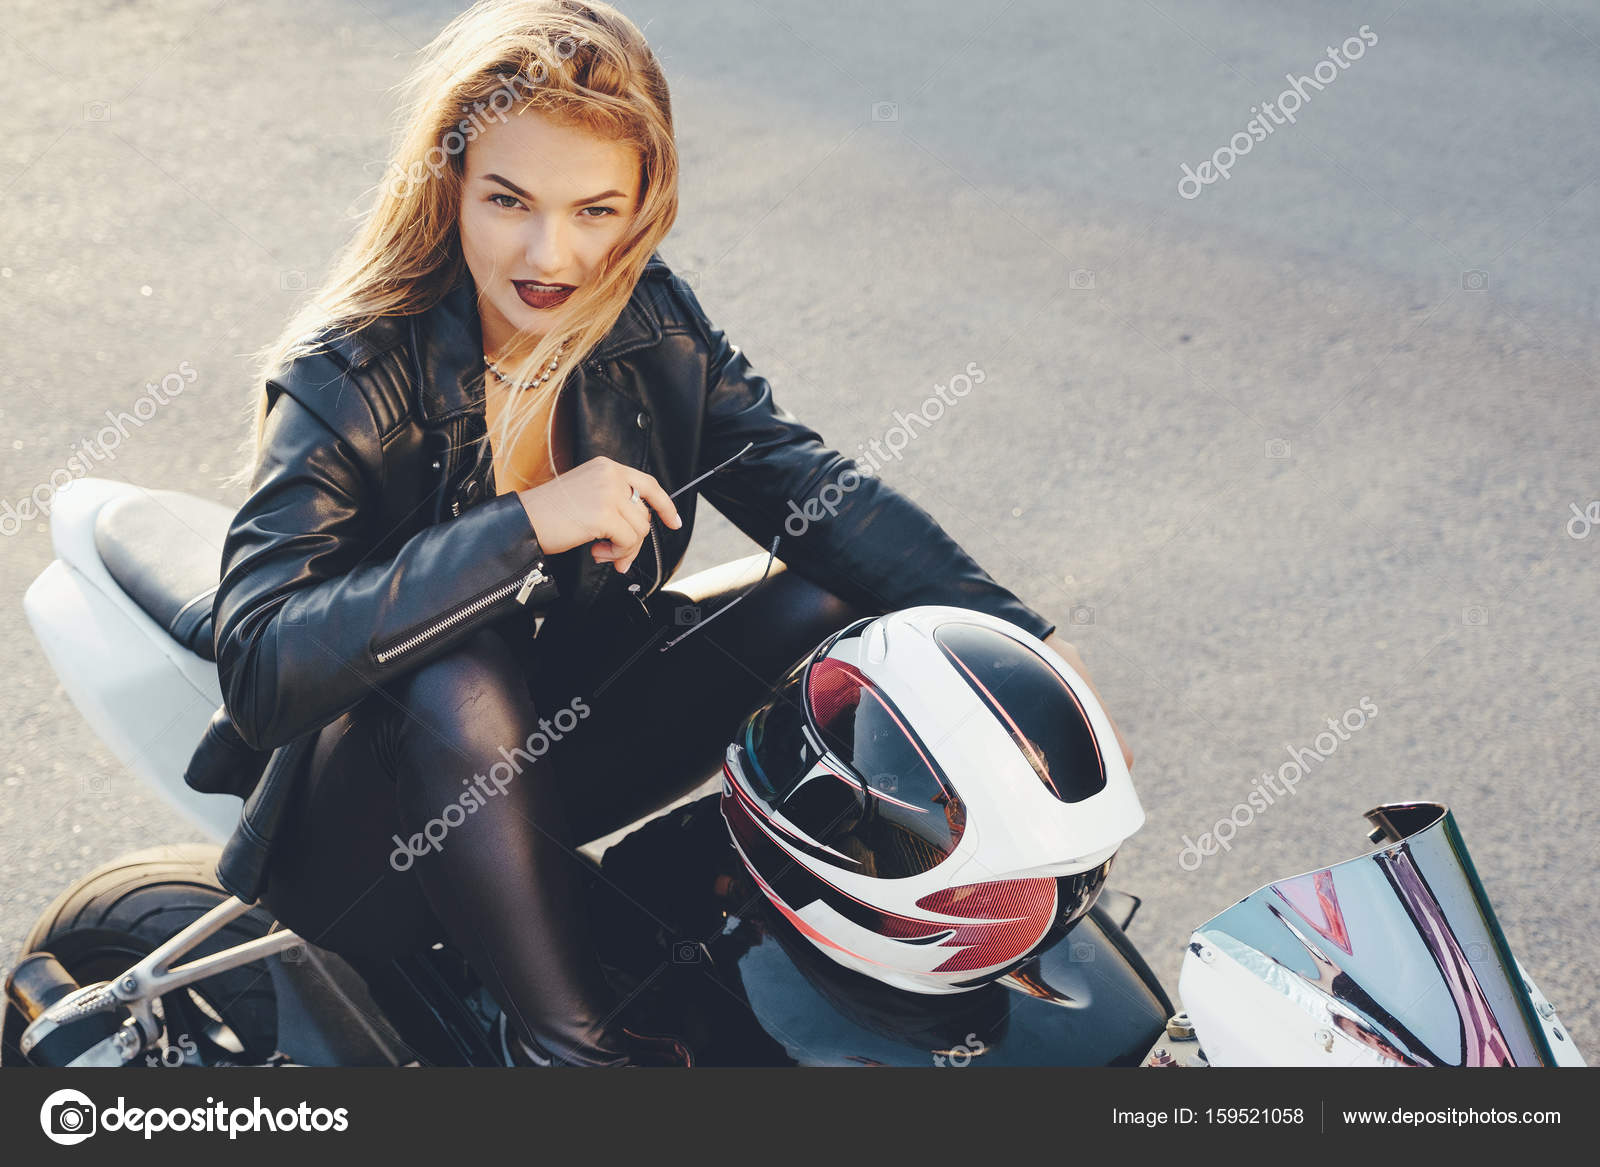 biker girl in lederkleidung auf einem motorrad stockfoto arthurhidden 159521058. Black Bedroom Furniture Sets. Home Design Ideas